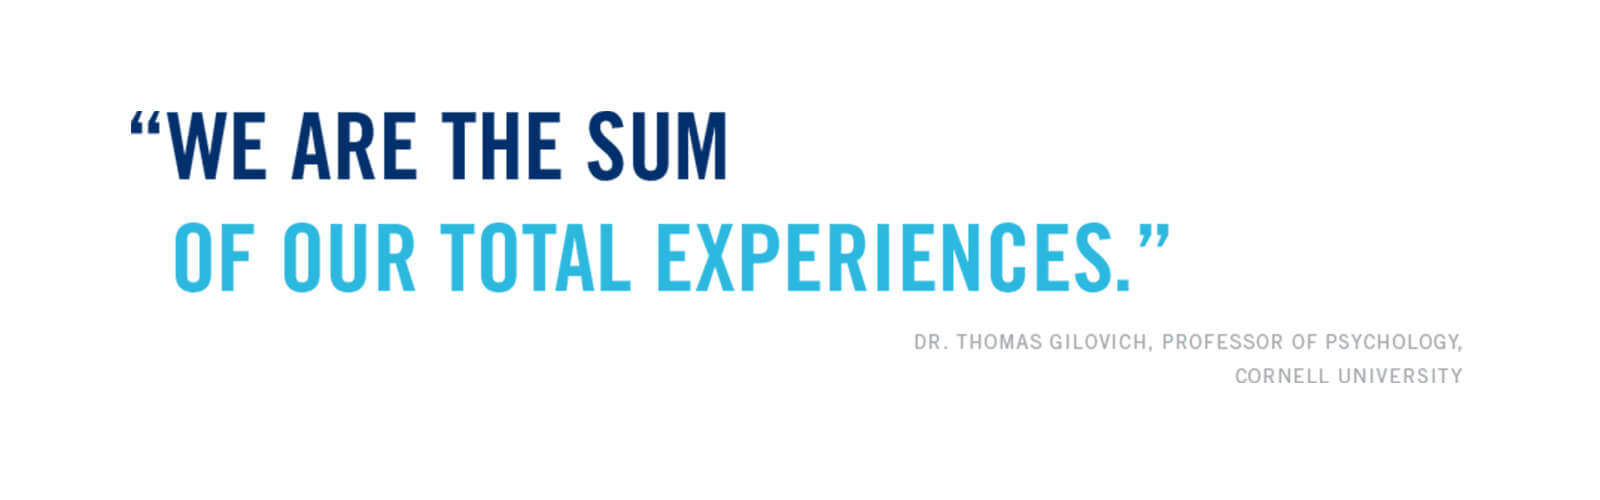 we are the sum of our total experiences - dr thomas gilovich